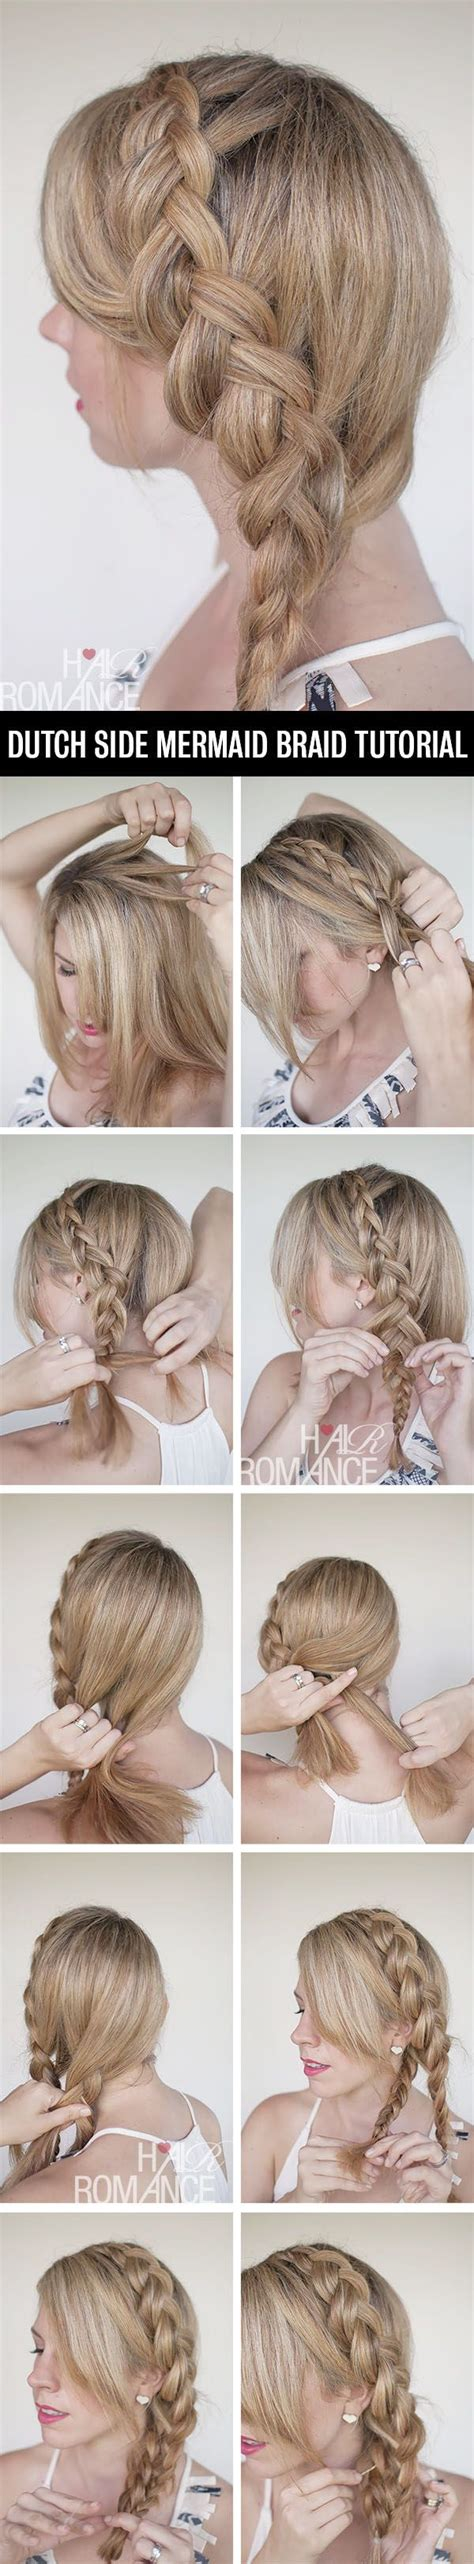 422 Best Long Hair Style Ideas Images On Pinterest